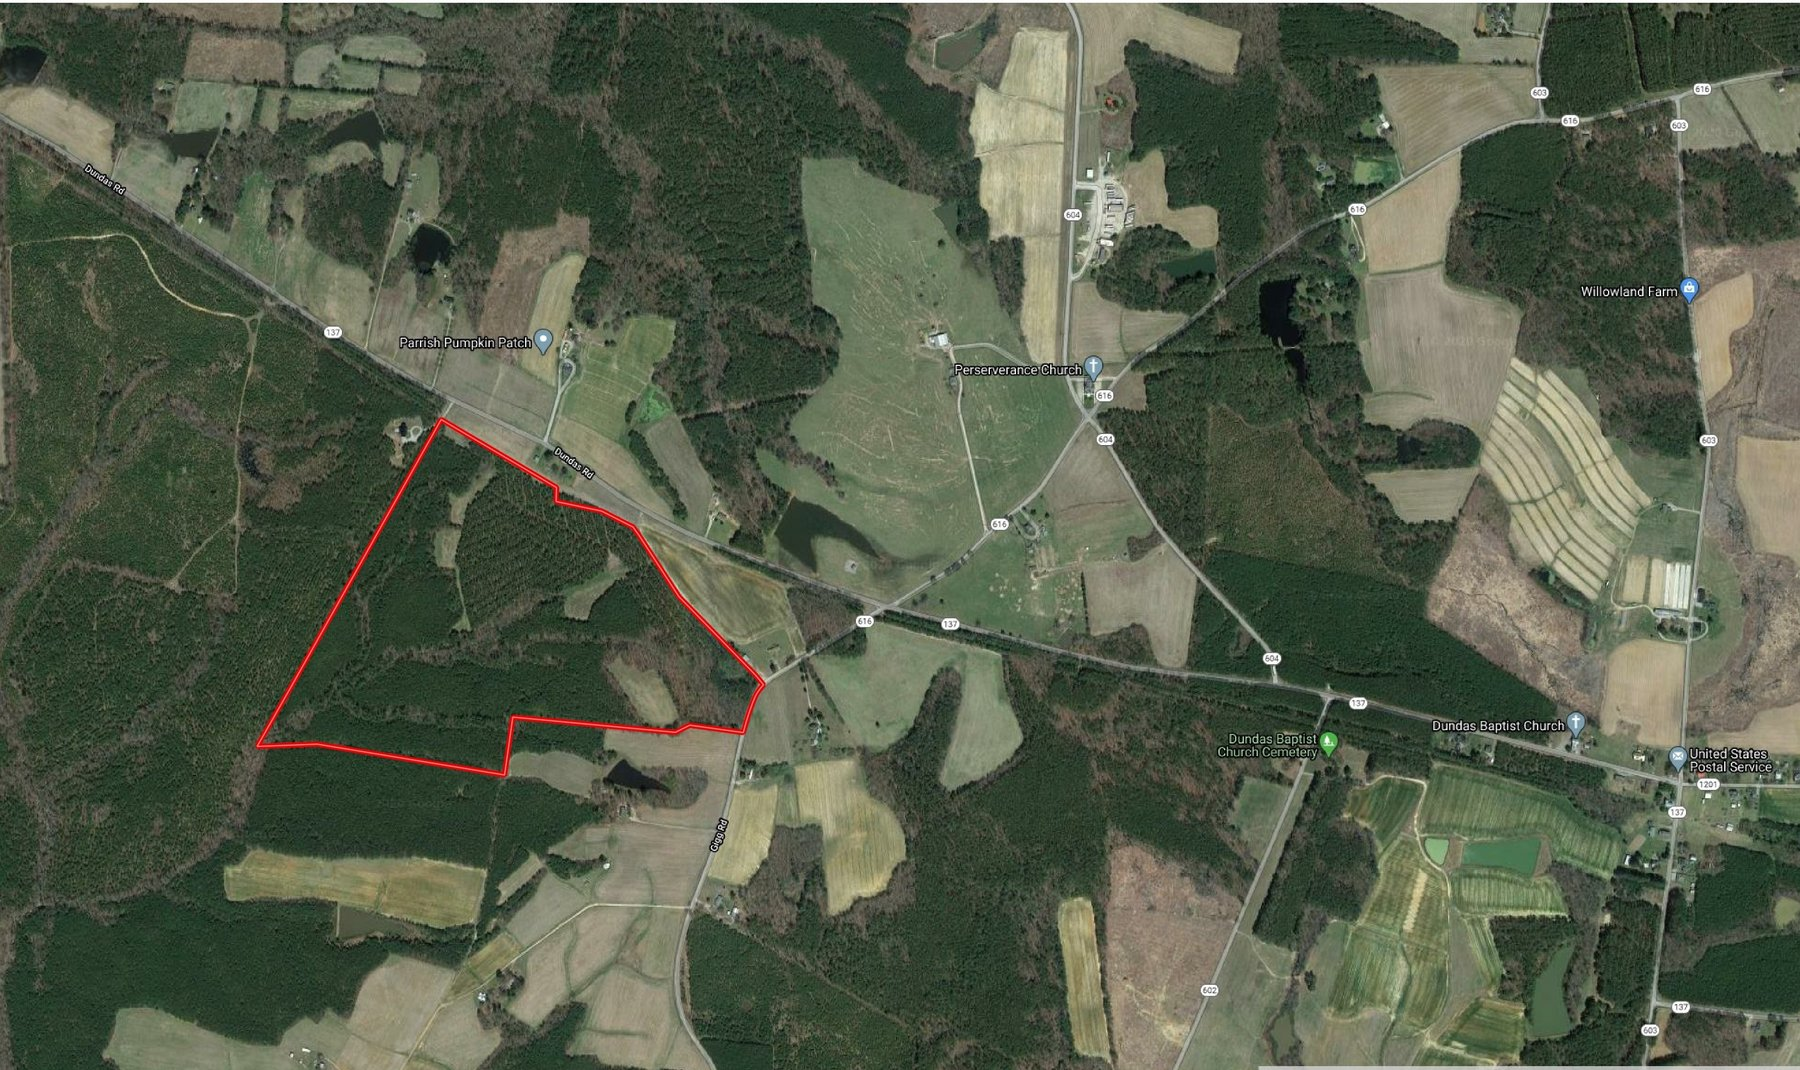 99 Acres of Timberland in Lunenburg County, VA